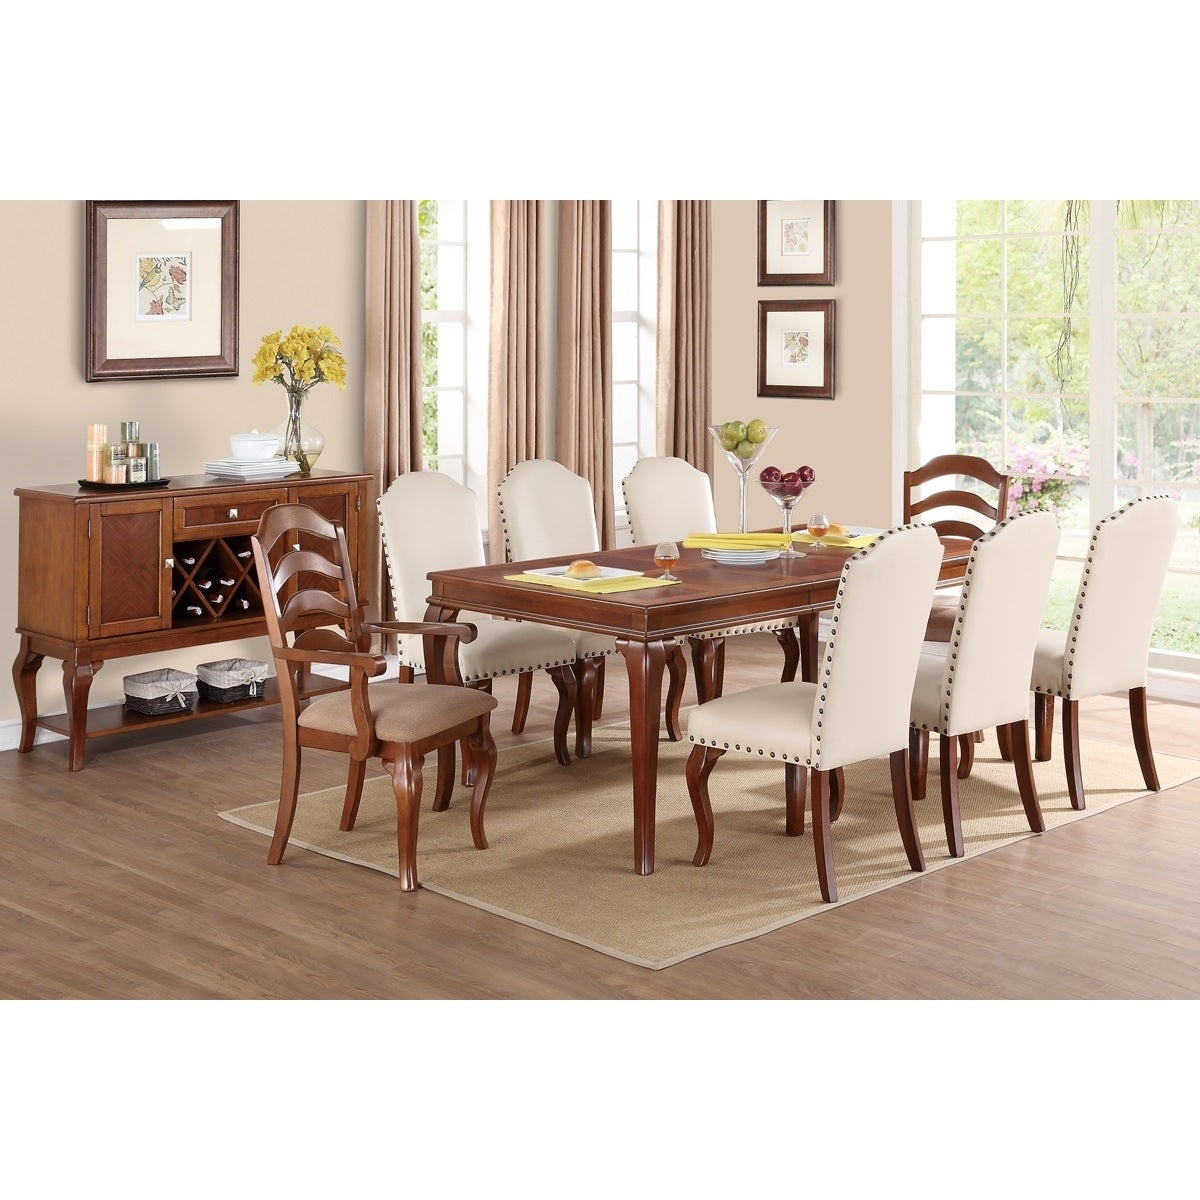 Shop western white cream poplar wood and bicast leather nailhead parsons dining chairs set of 6 free shipping today overstock com 10069281